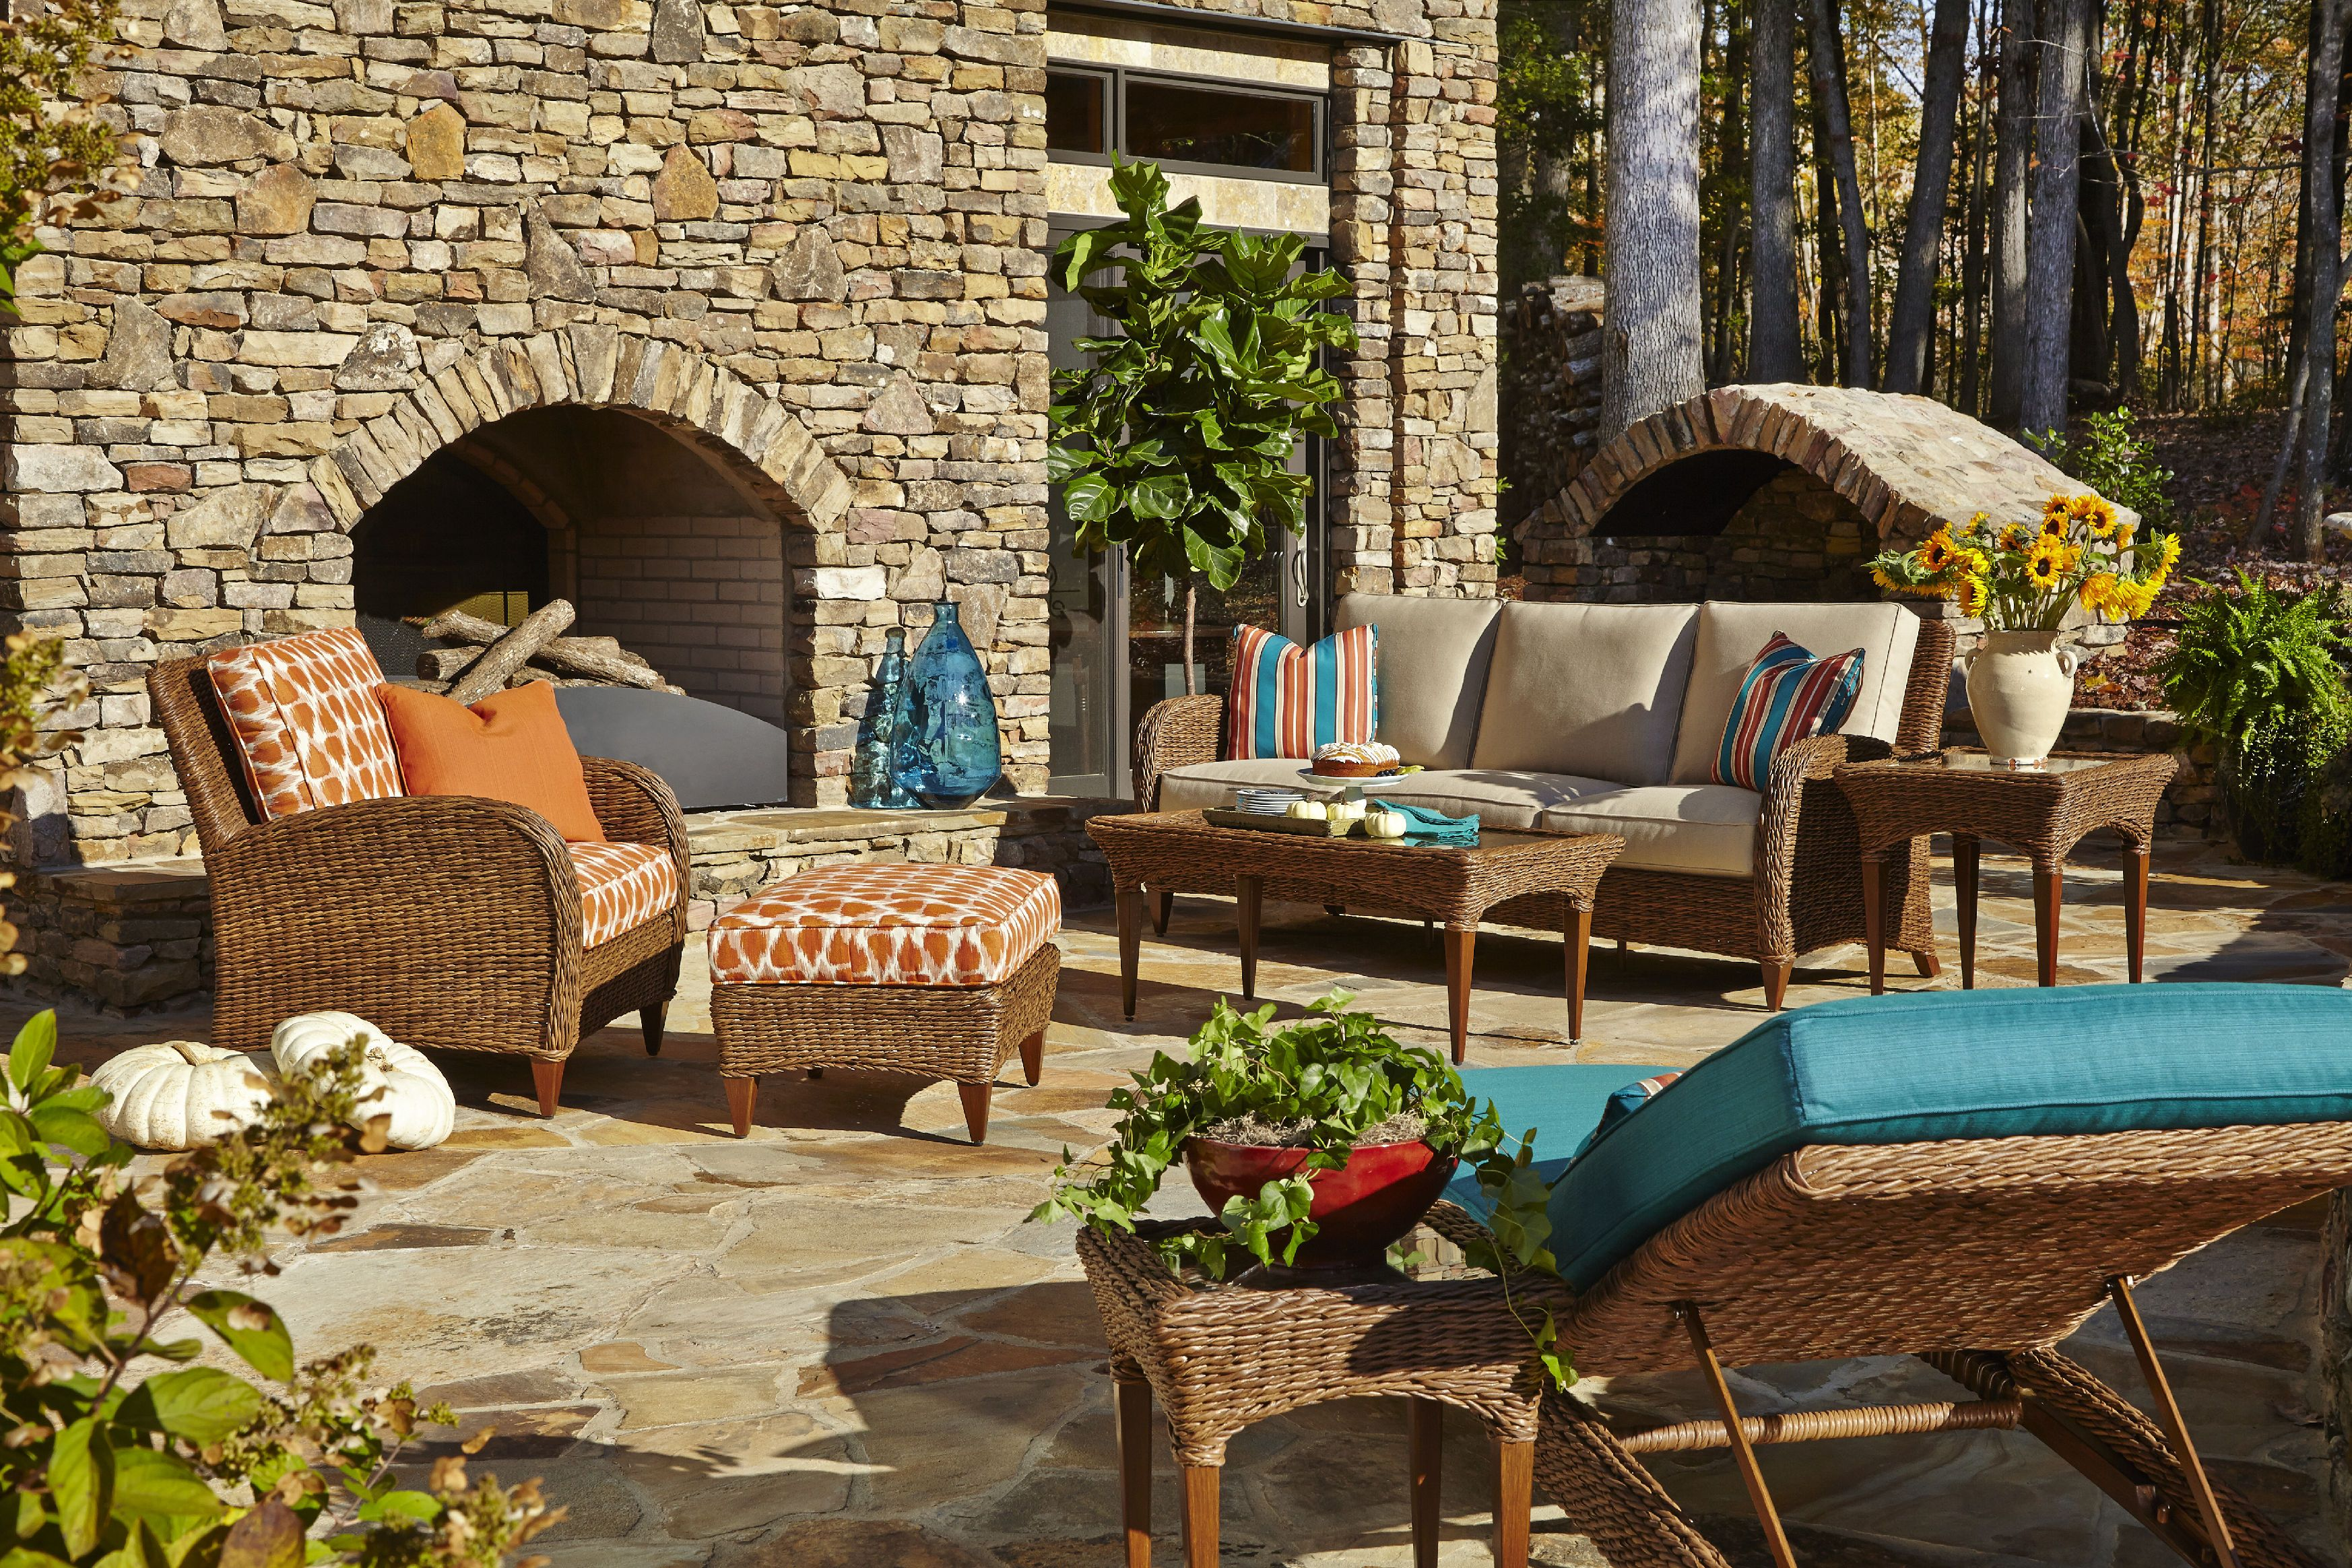 The Palmetto Outdoor Furniture Collection, Available To Order From The Tin  Roof In Spokane WA